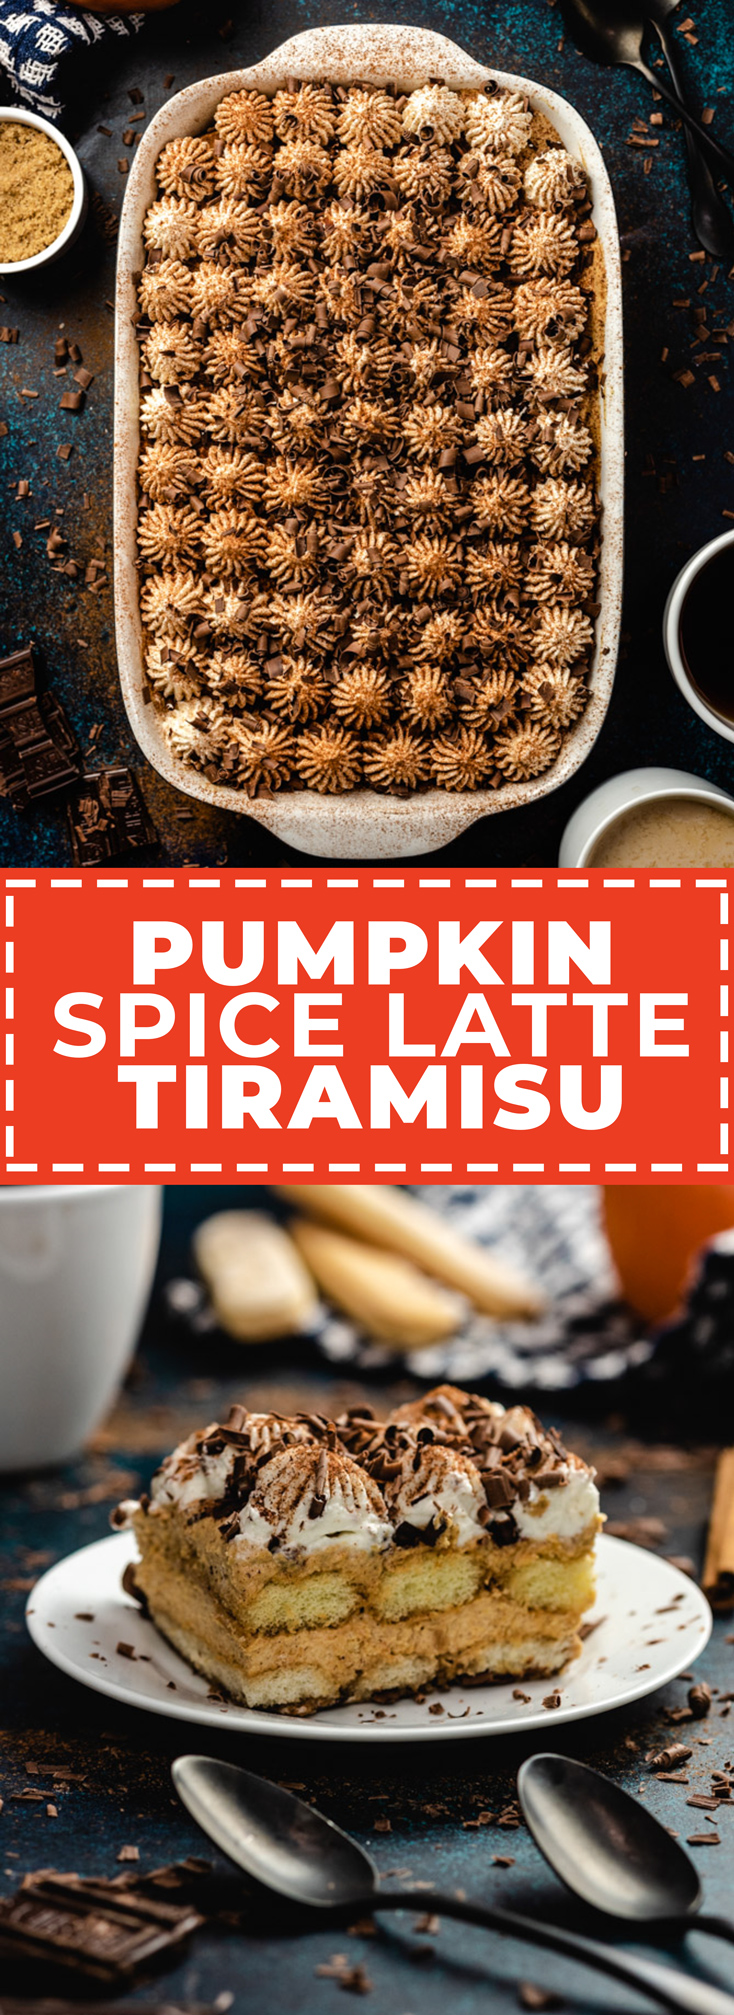 This easy, luxurious Pumpkin Spice Latte Tiramisu features all of our favorite Fall flavors. With its layers of fluffy pumpkin mousse, coffee-soaked ladyfingers, sweet whipped cream, and plenty of pumpkin spice, it's a PSL-lover's dream dessert. | hostthetoast.com